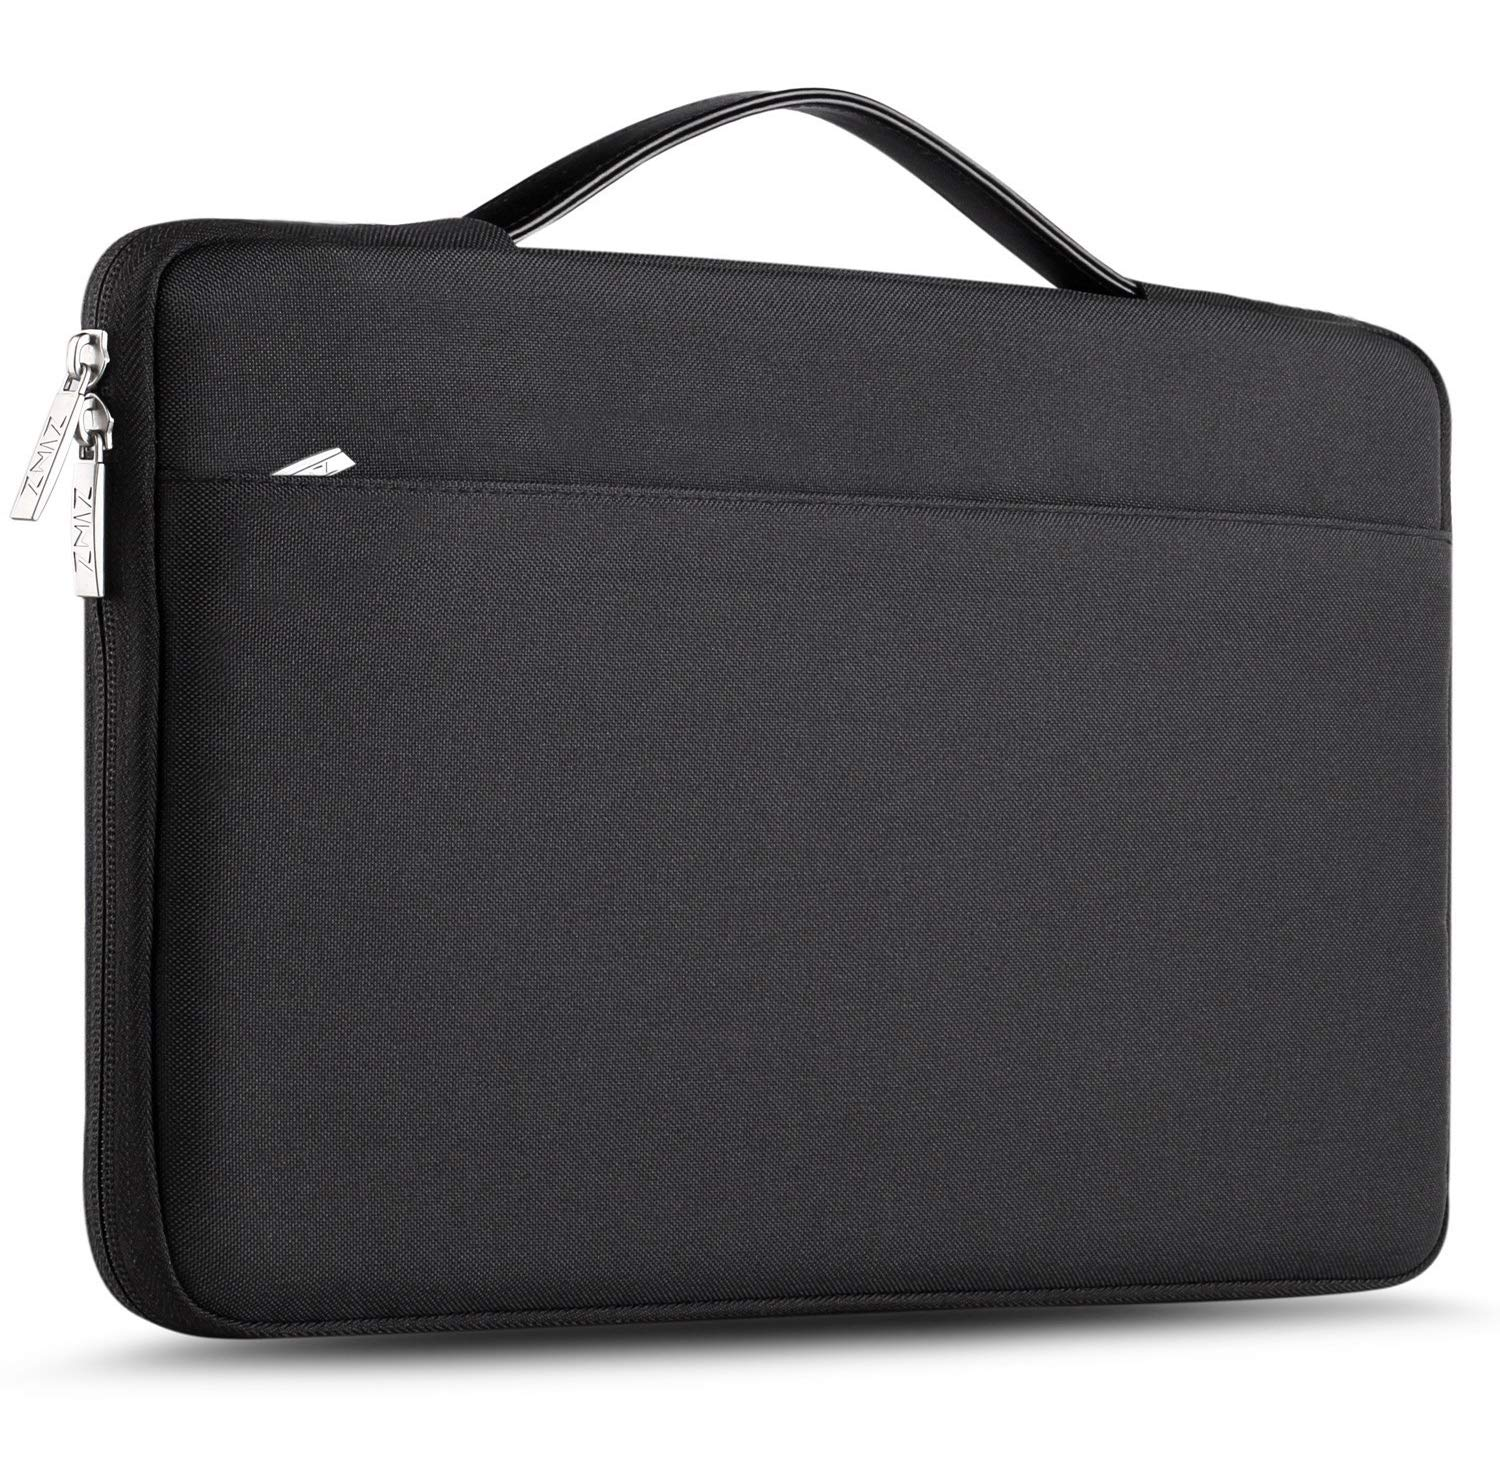 ZINZ 13-13.3 Inch Laptop Sleeve Compatible with MacBook Air| MacBook Pro Retina Late 2012 - Early 2016 | Most 14 Inch Case Compatible with Dell/Ausu/Acer/HP/Toshiba/Lenovo Laptop Bag Cover - Black